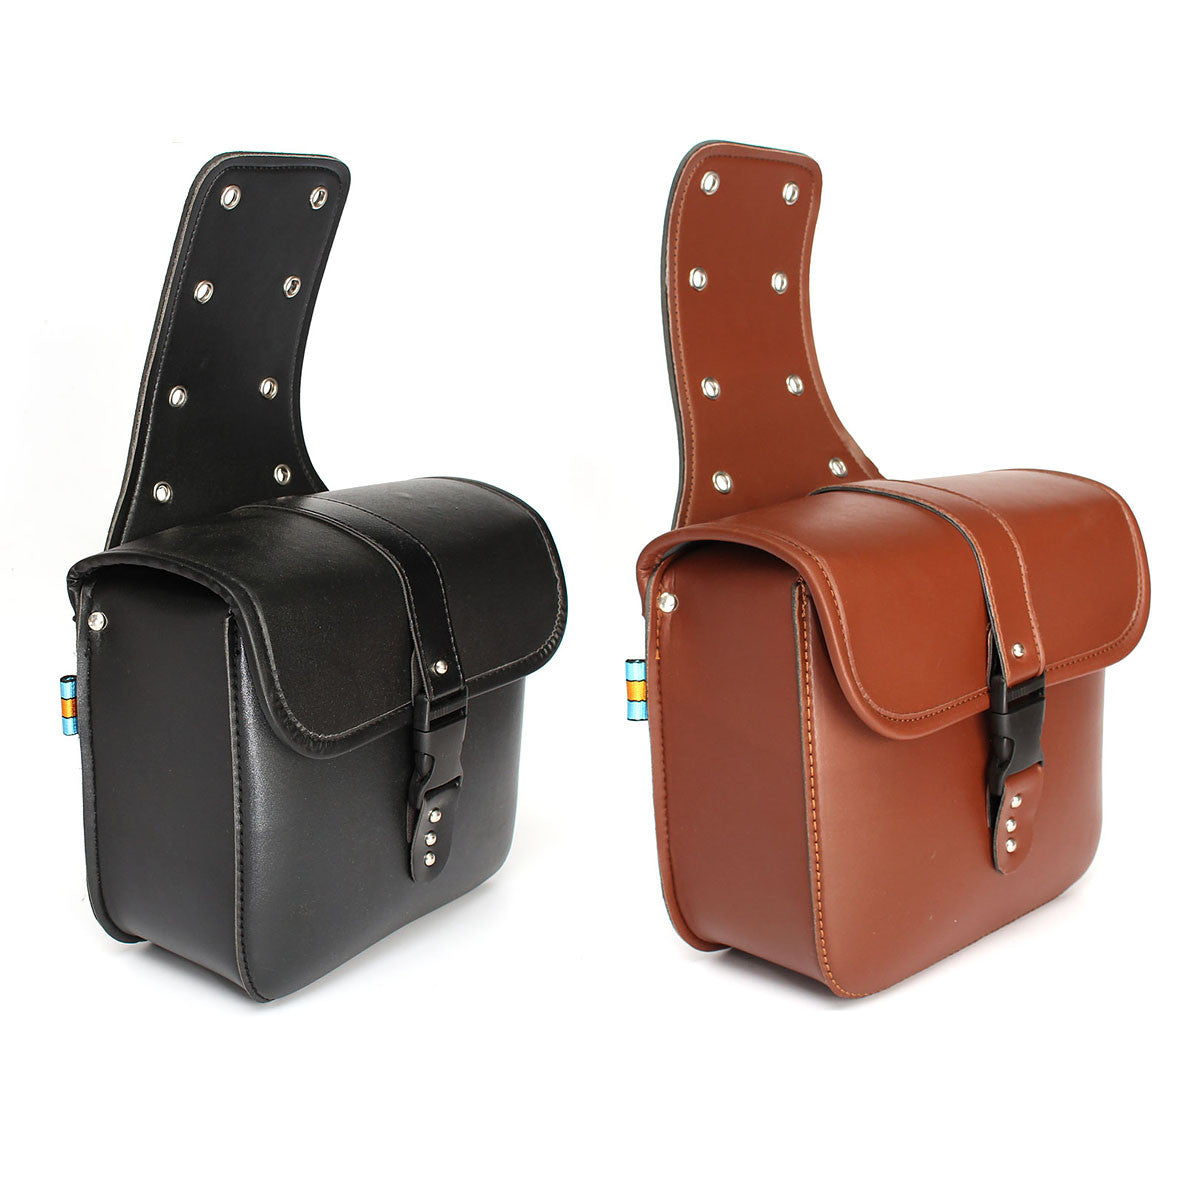 2 Pieces Universal Motorcycle PU Leather Saddlebags Storage Tool For